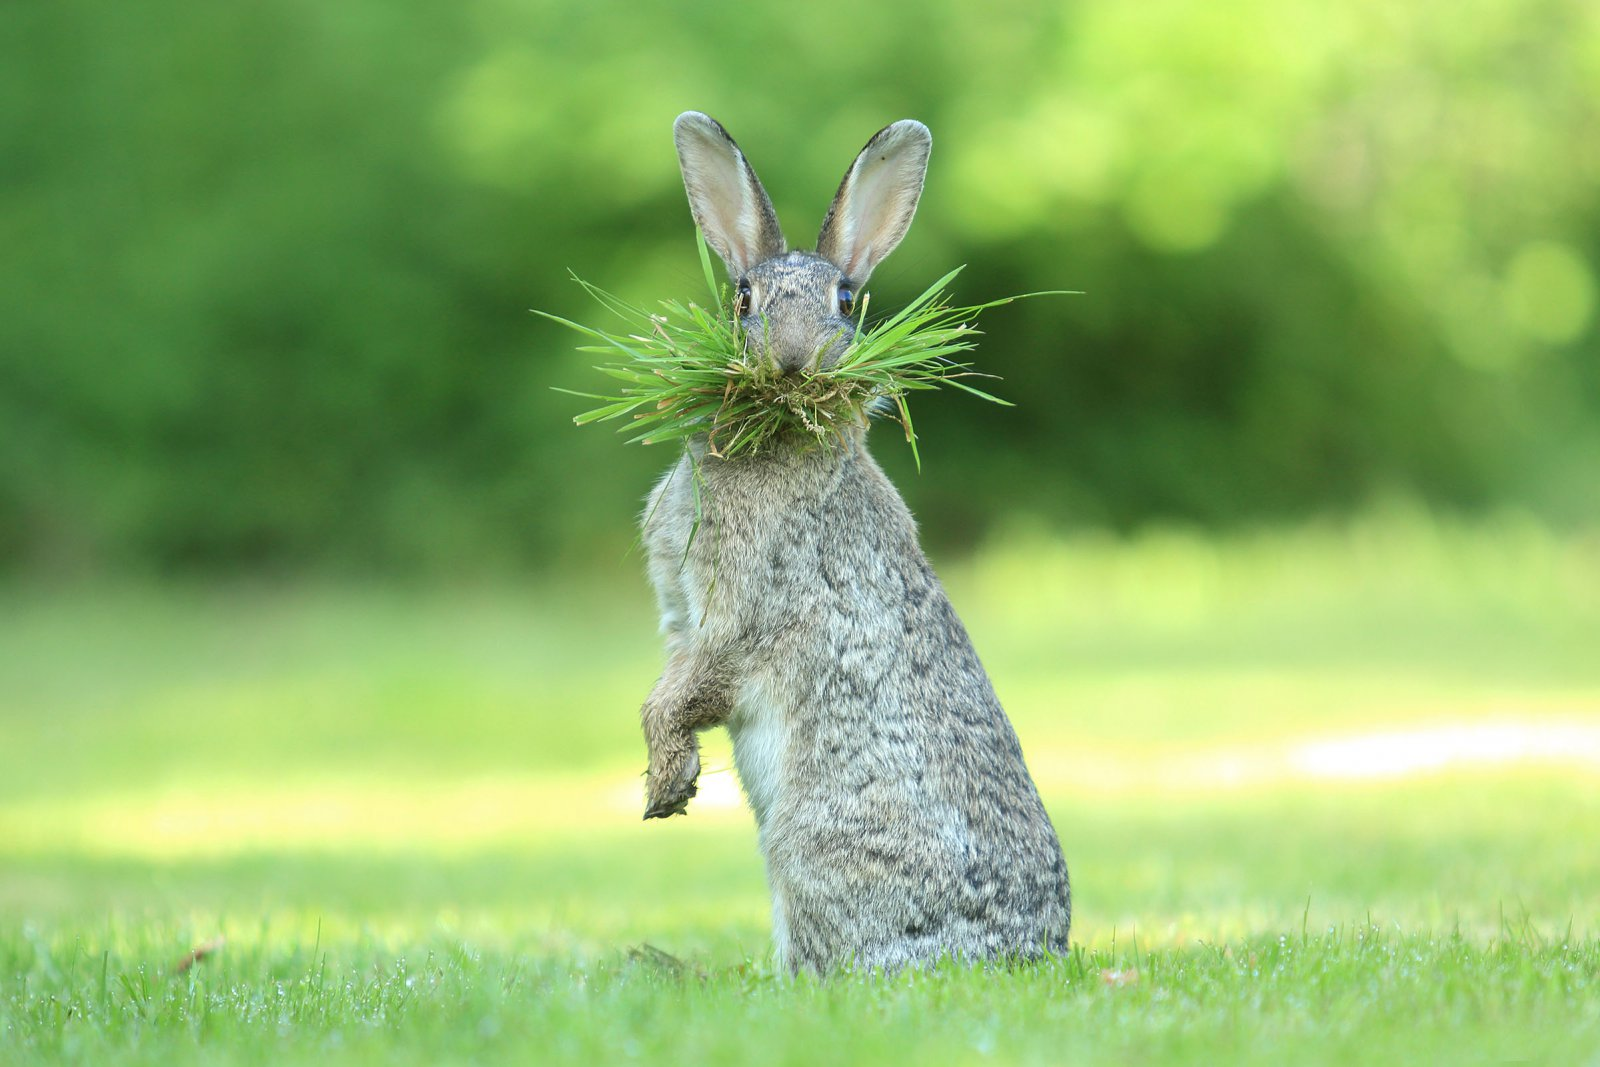 """Eh What's Up Doc?"", © Olivier Colle, Highly Commended, Comedy Wildlife Photography Awards"